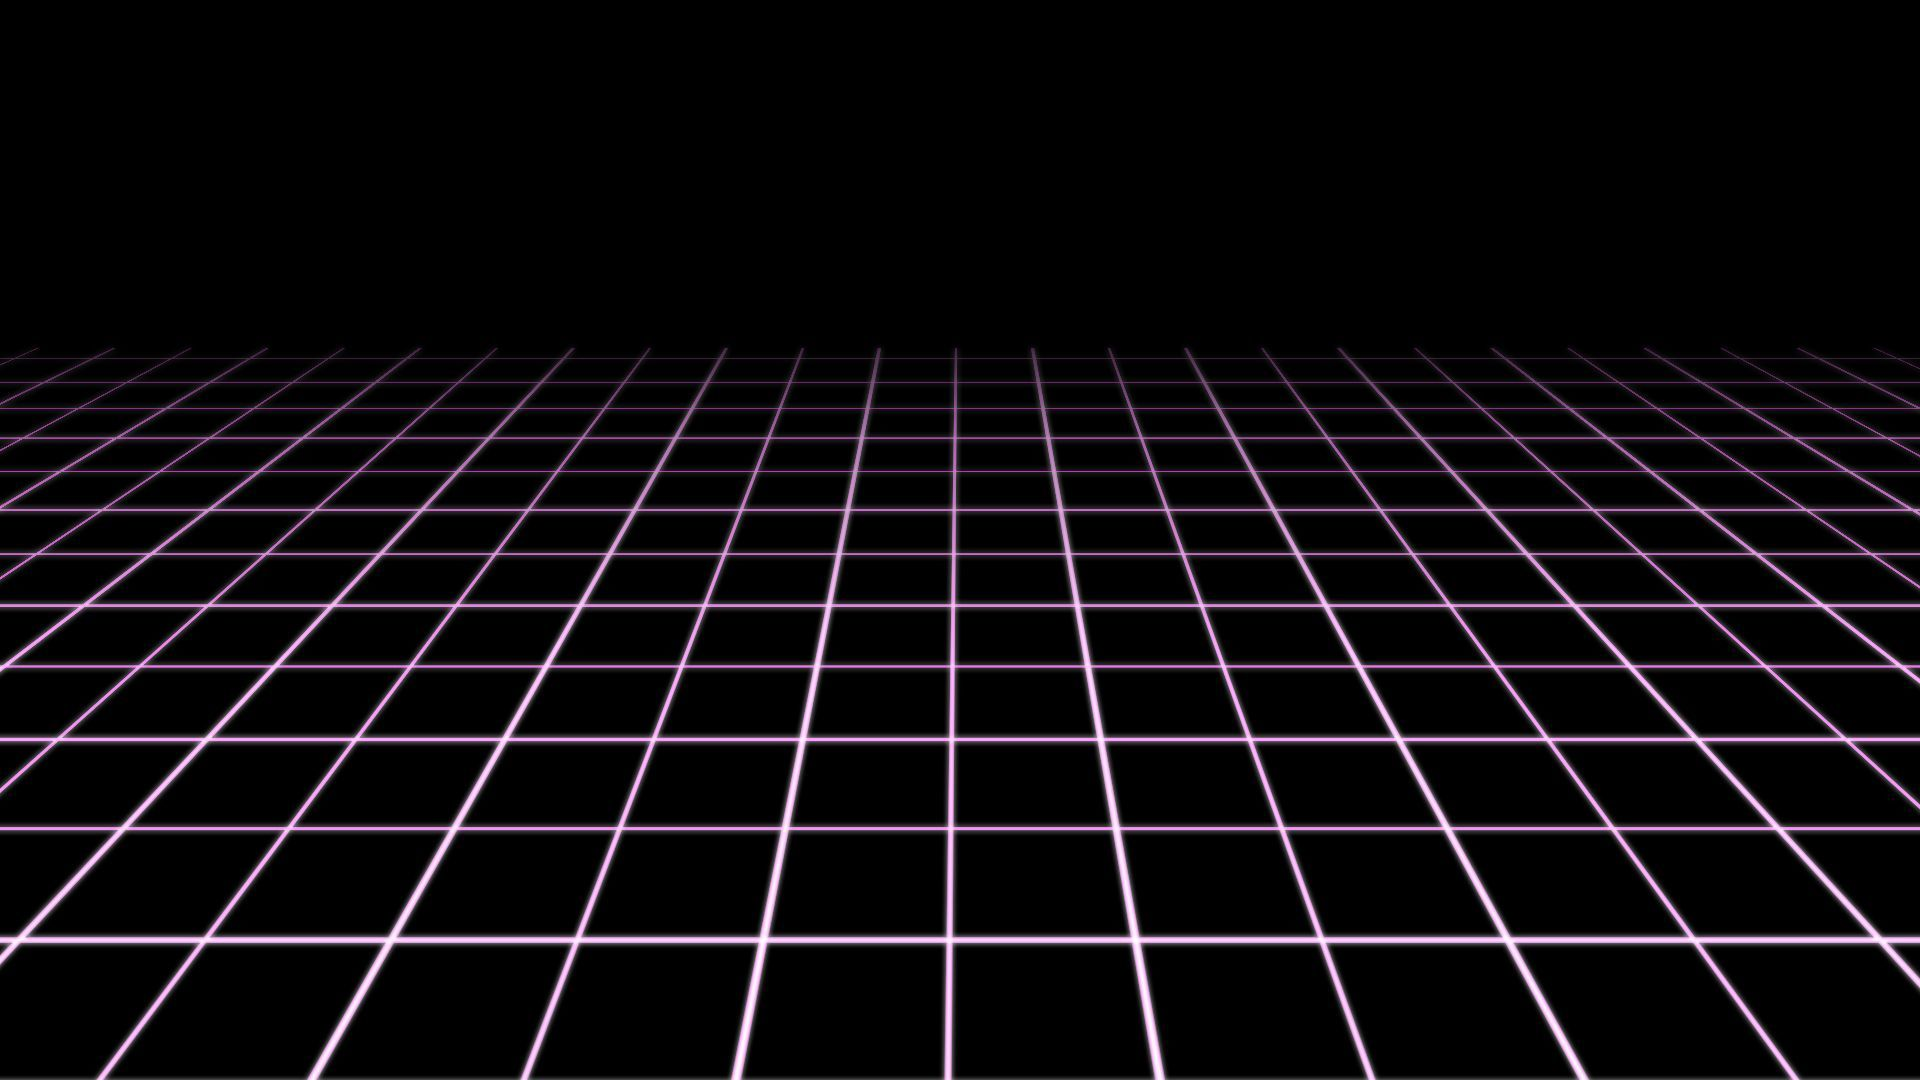 Abstract Grid Hd Wallpapers Wallpaper Cave